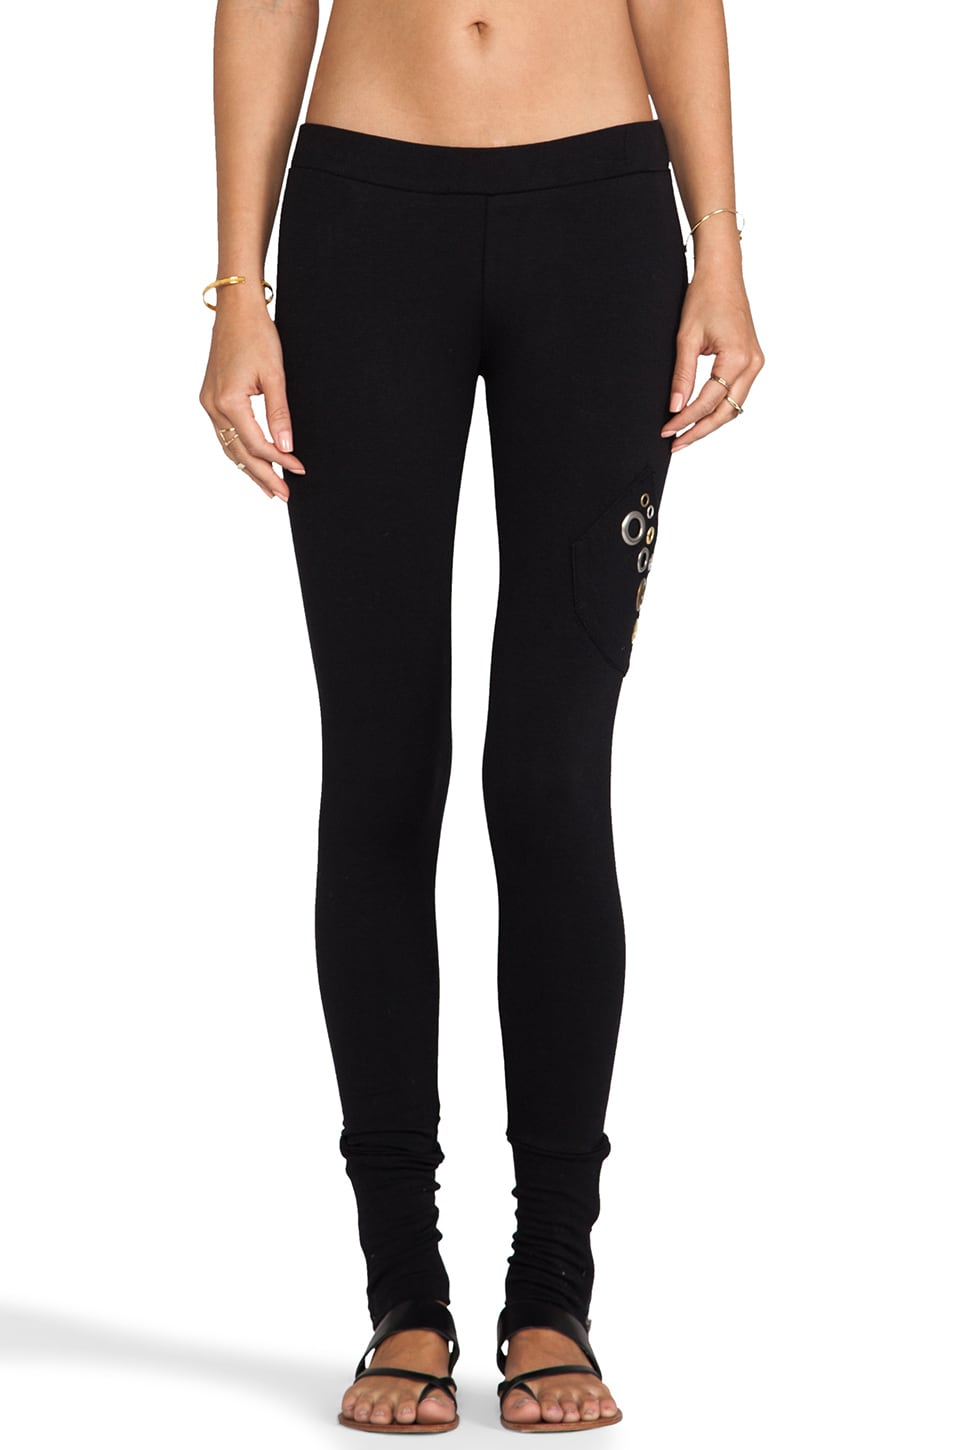 Beach Bunny Grommet Loungewear Zip Cuff Legging in Black